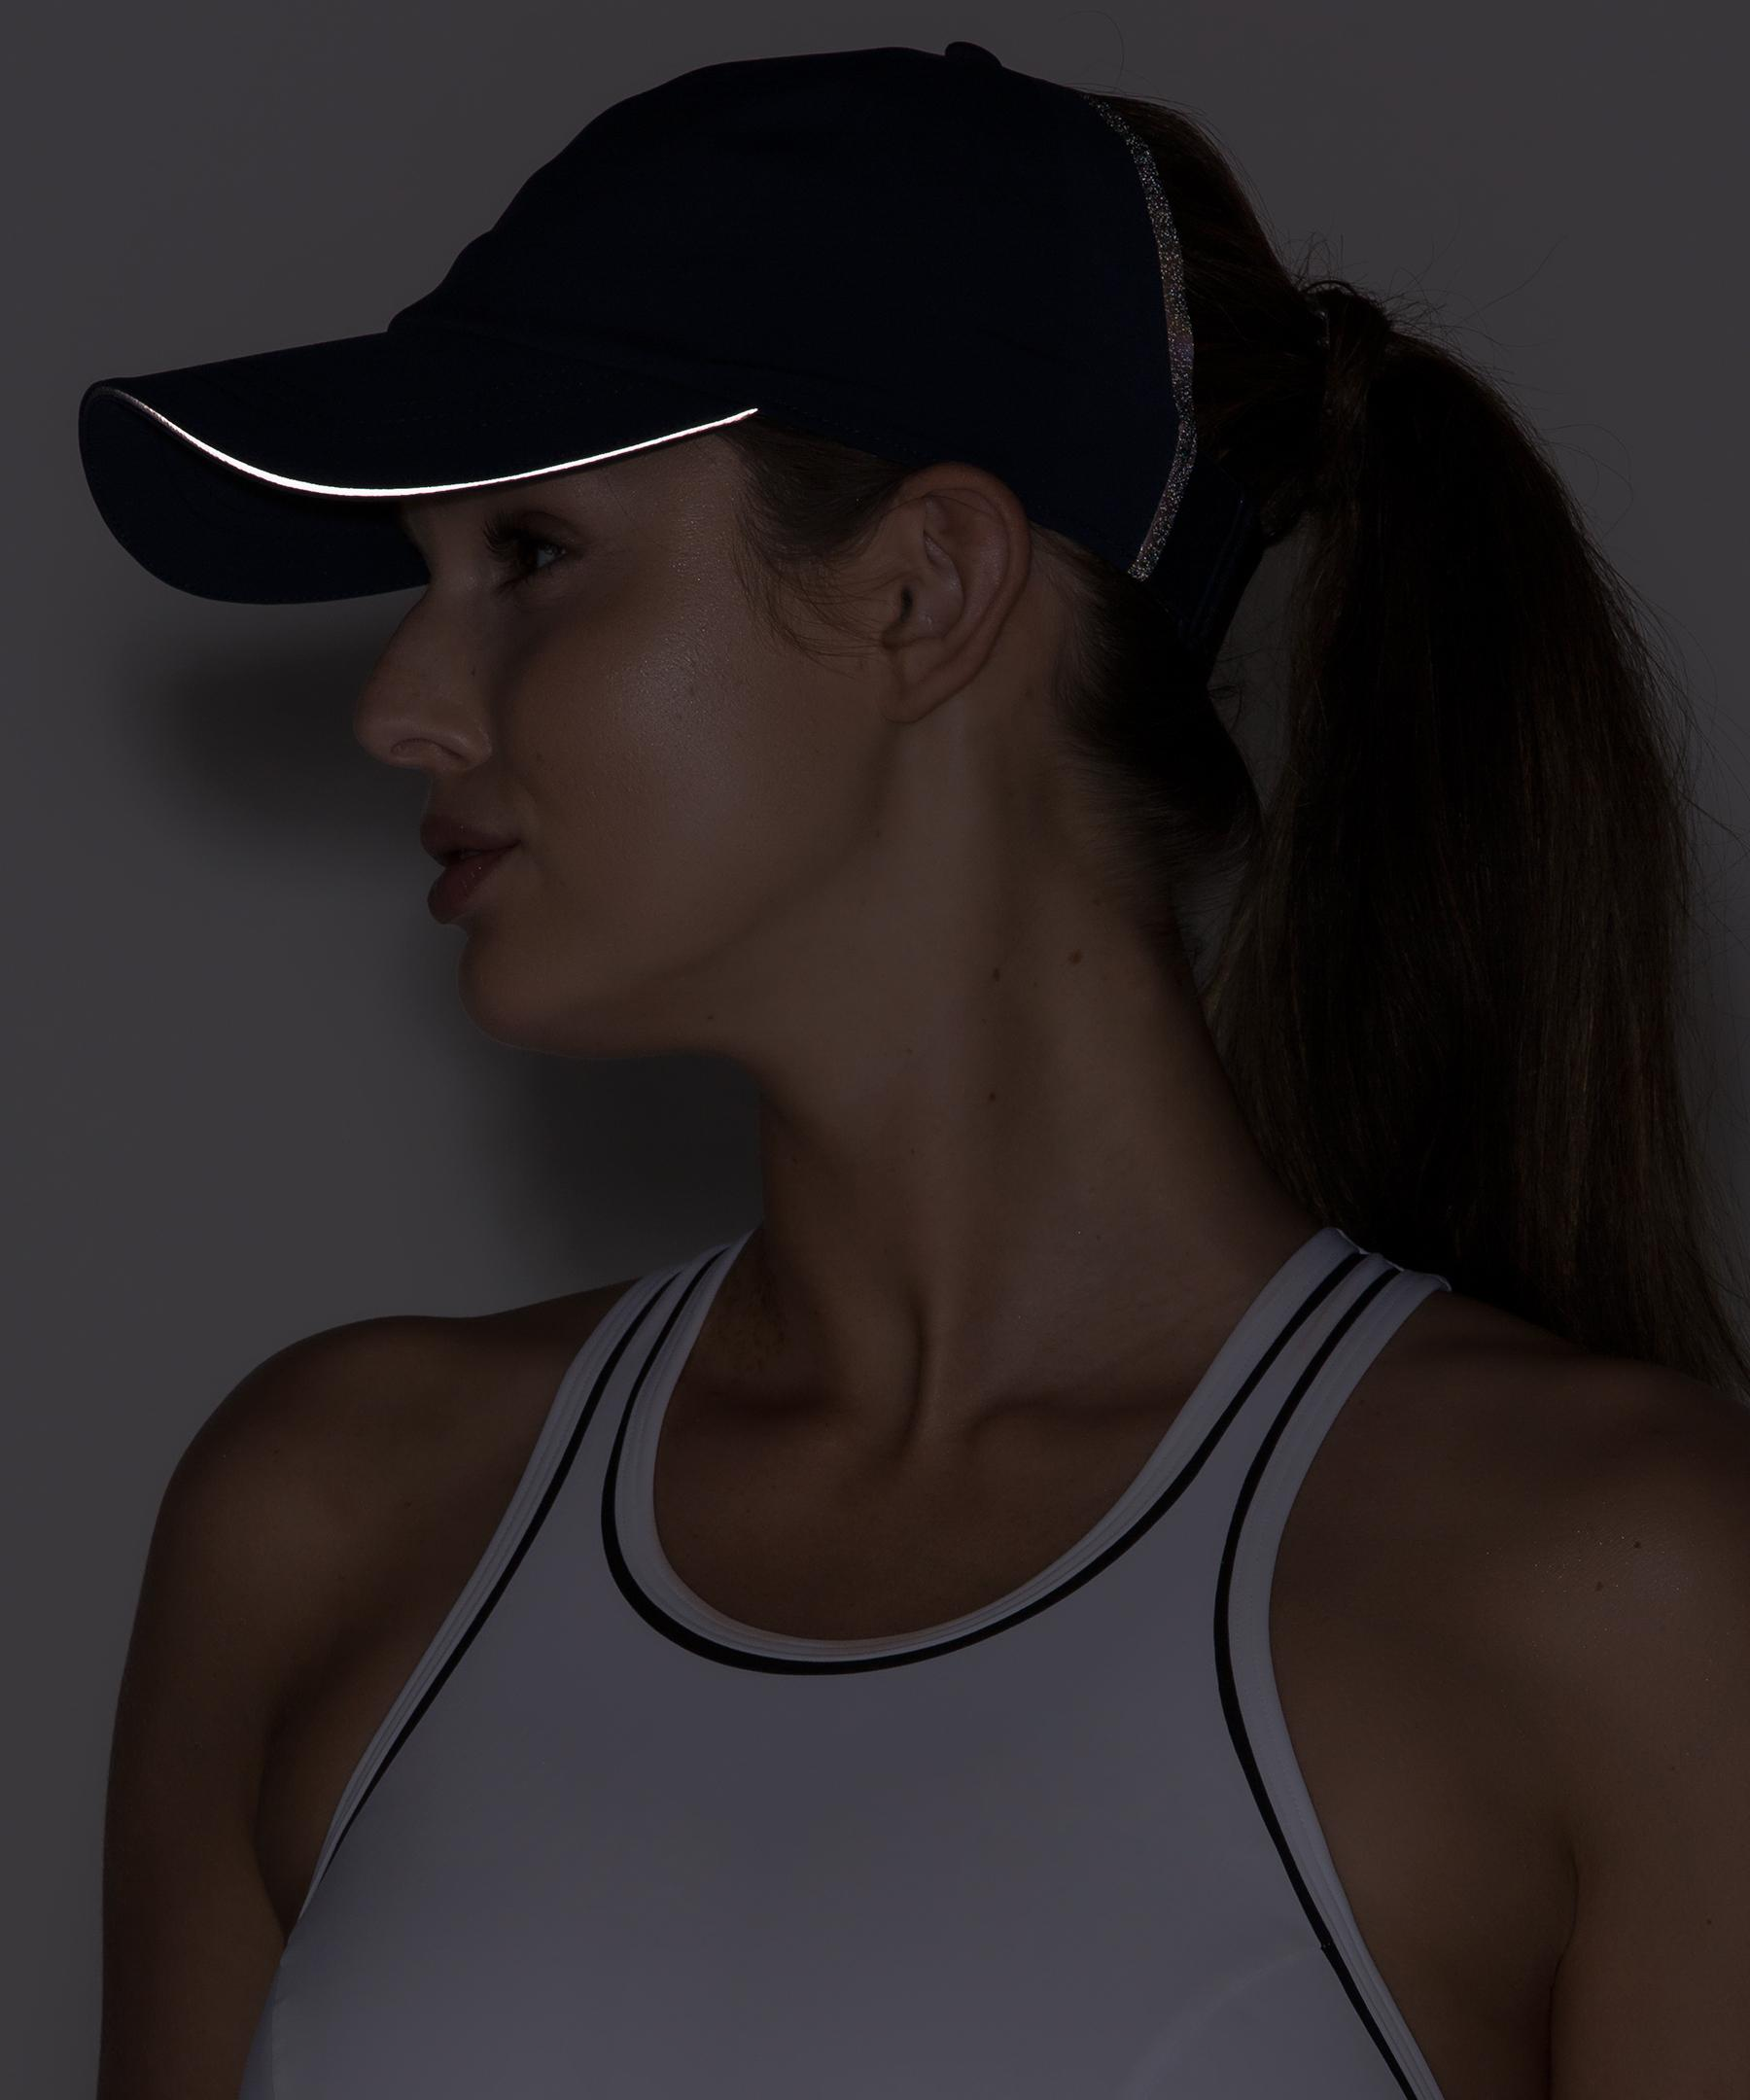 43fc8c9416e Lululemon athletica blue baller hat run ponytail view fullscreen jpg  1800x2160 Lululemon hat with pony tail